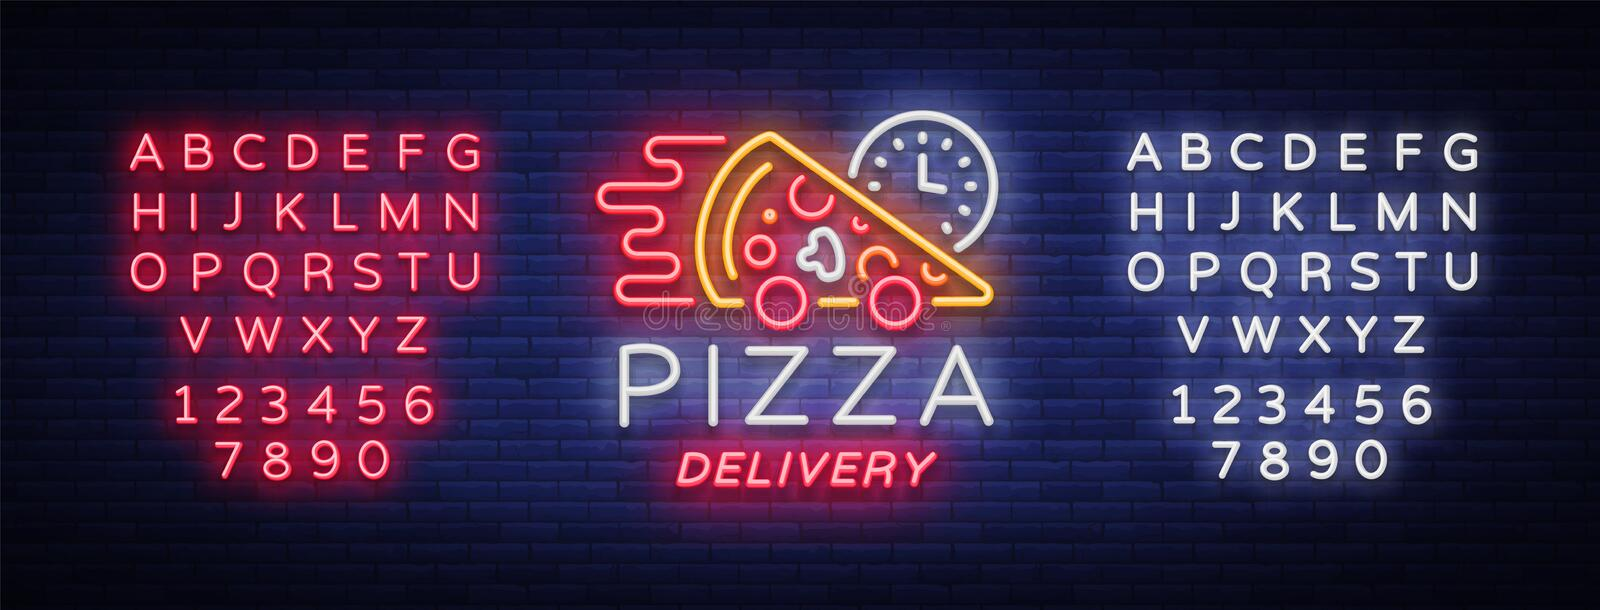 Delivery pizza neon sign. Logo in neon style, light banner, luminous symbol, bright night neon advertising food delivery vector illustration